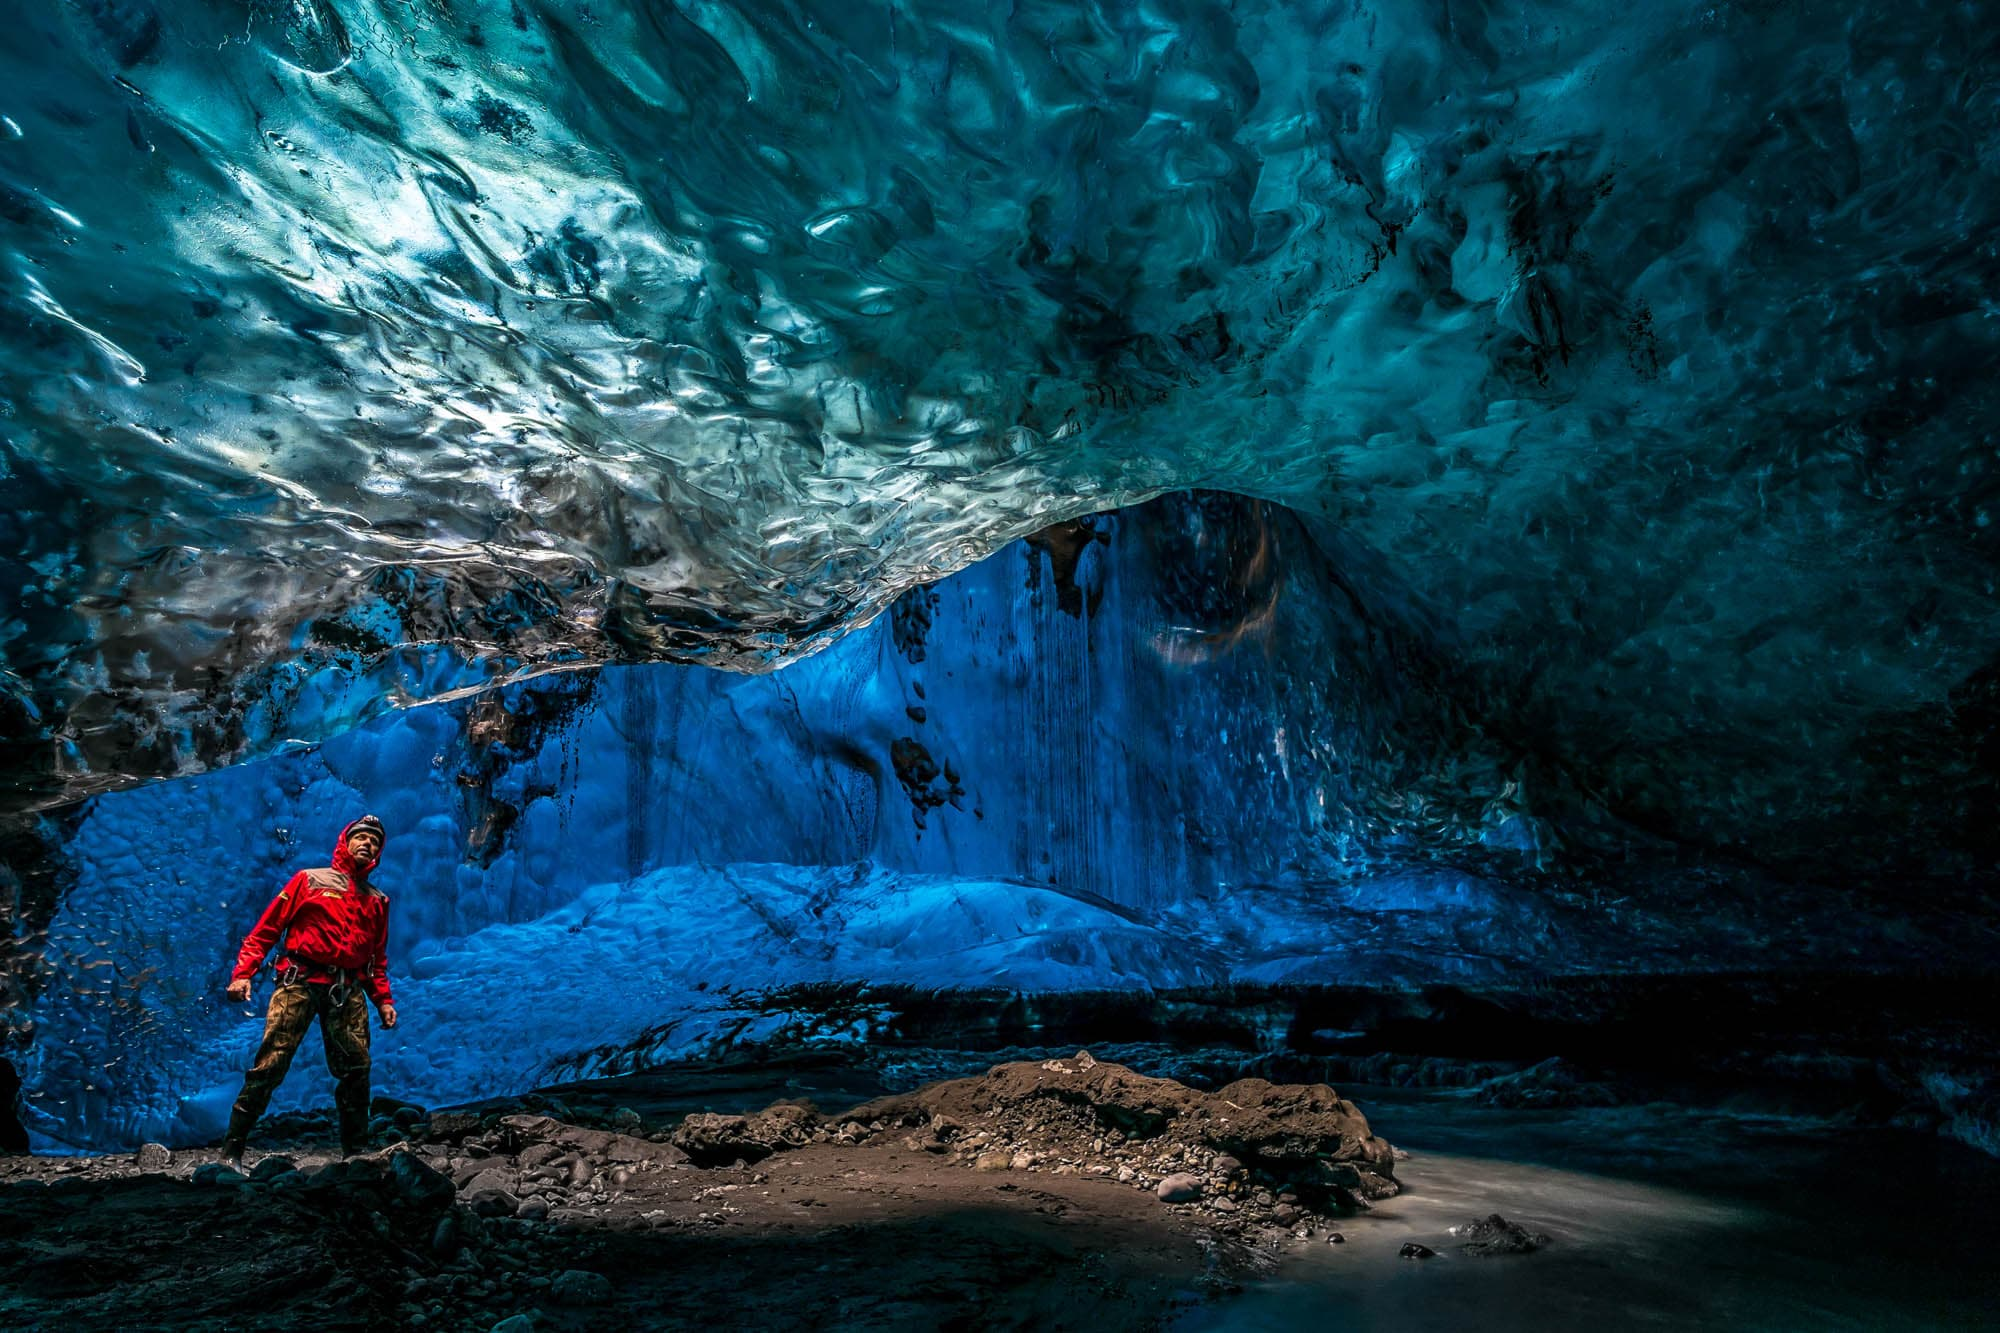 iceland ice cave tour by vatnajökull glacier